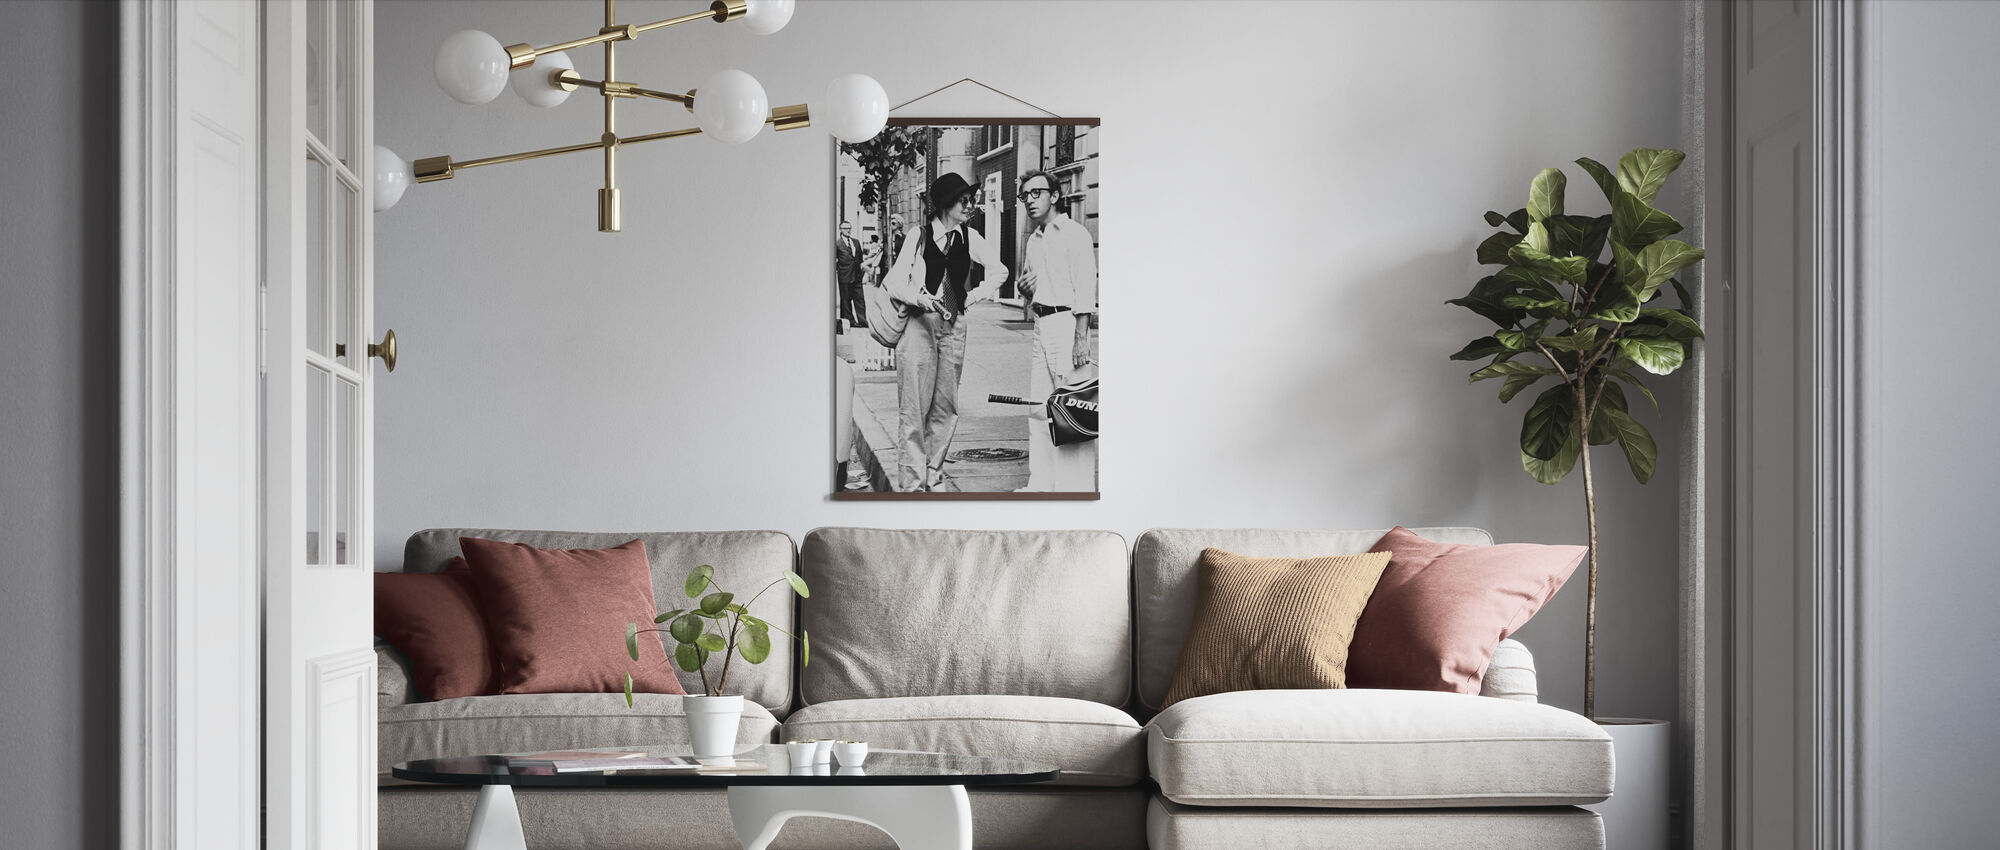 Annie Hall - Diane Keaton and Woody Allen - Poster - Living Room